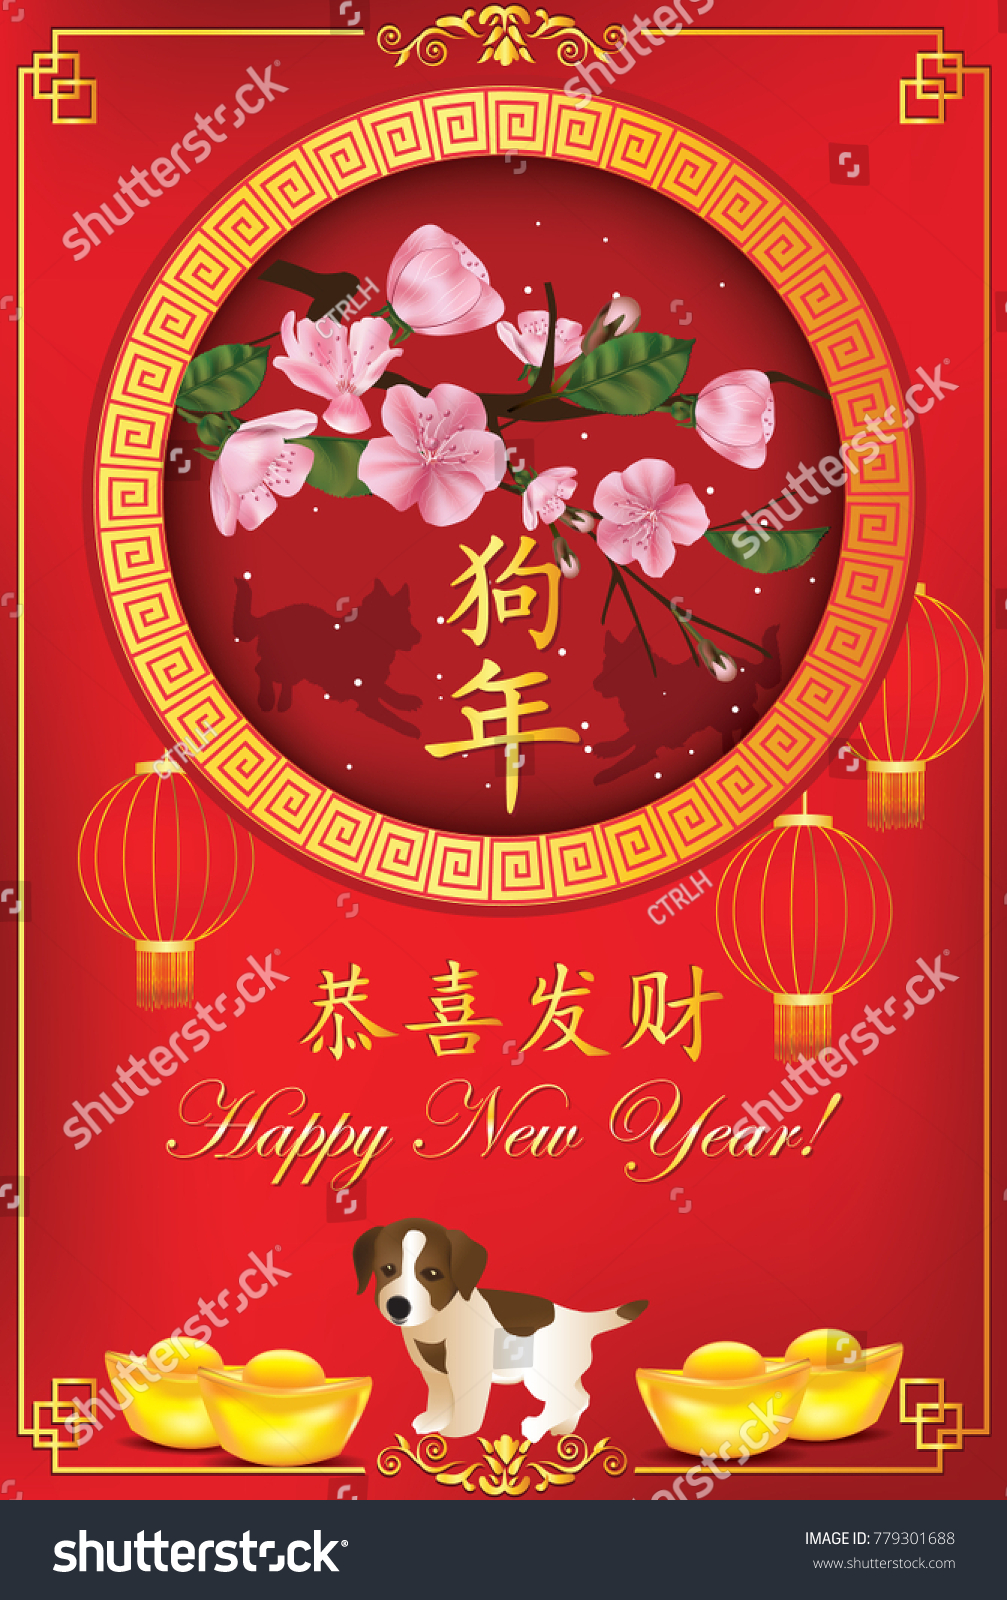 Happy Chinese New Year 2018 Greeting Card With Text In Chinese And